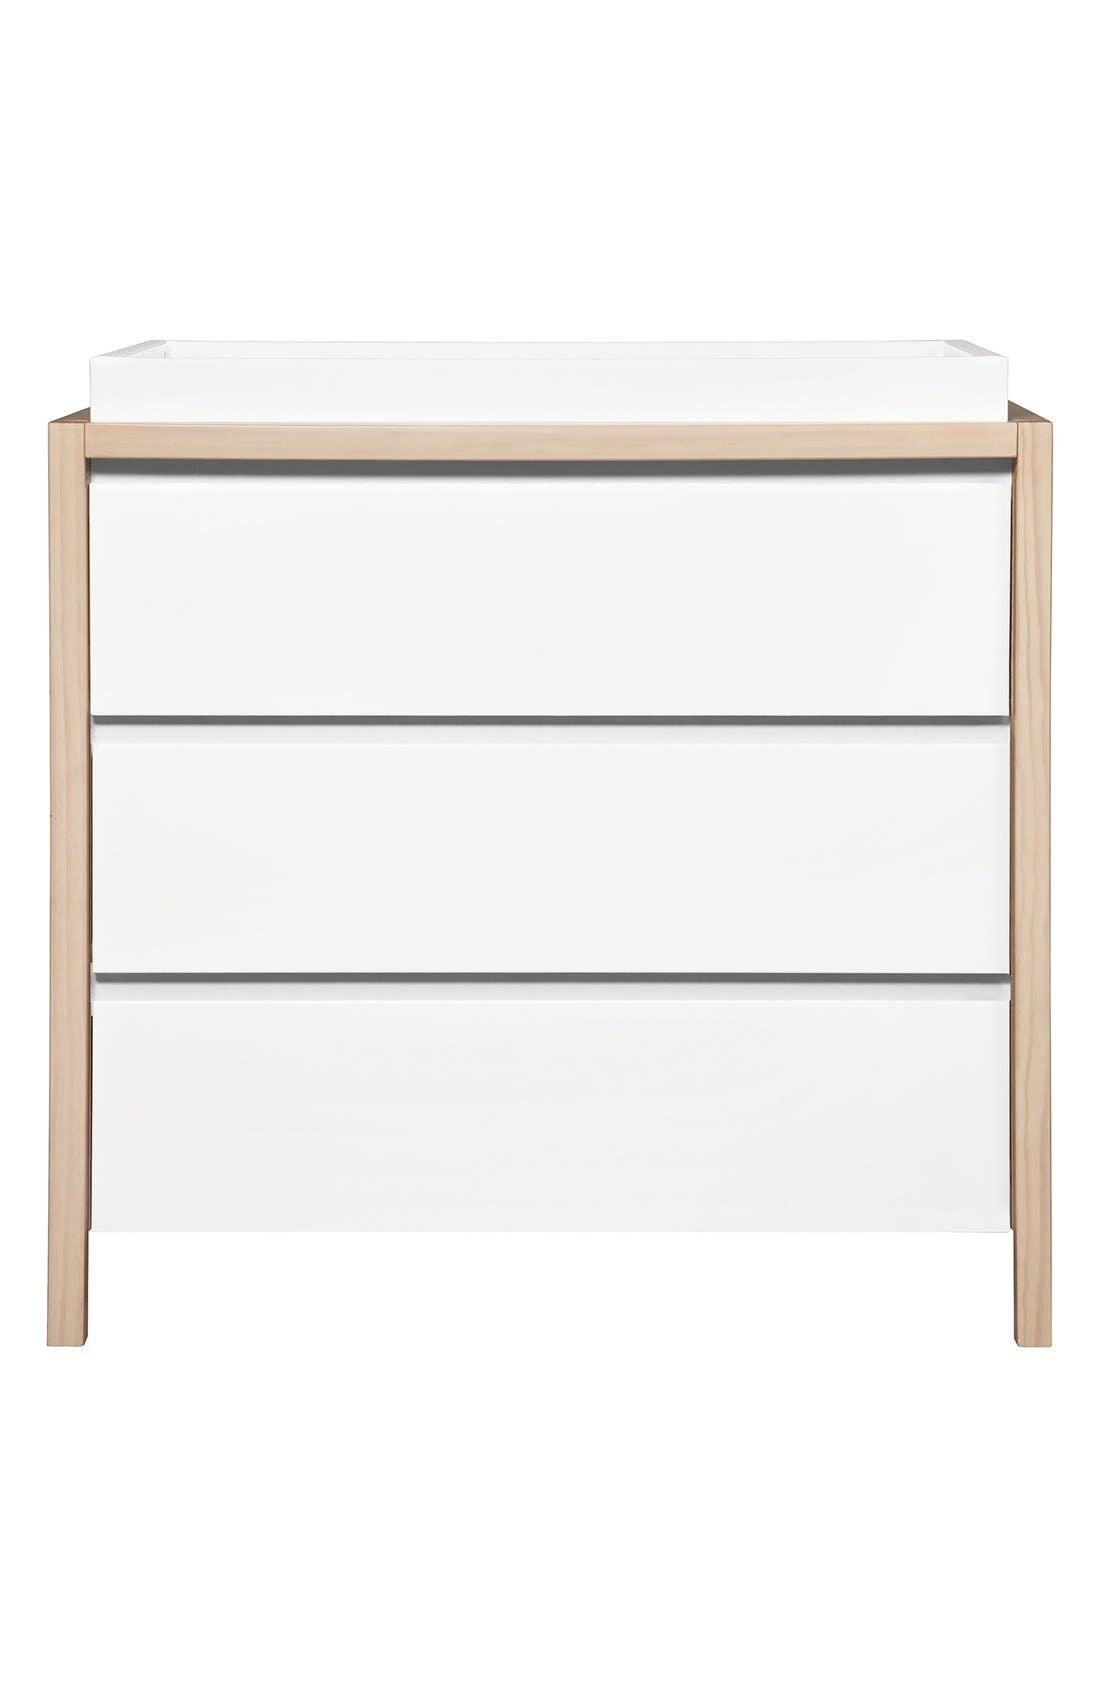 'Bingo' Three Drawer Changer Dresser,                             Main thumbnail 1, color,                             White Washed Natural